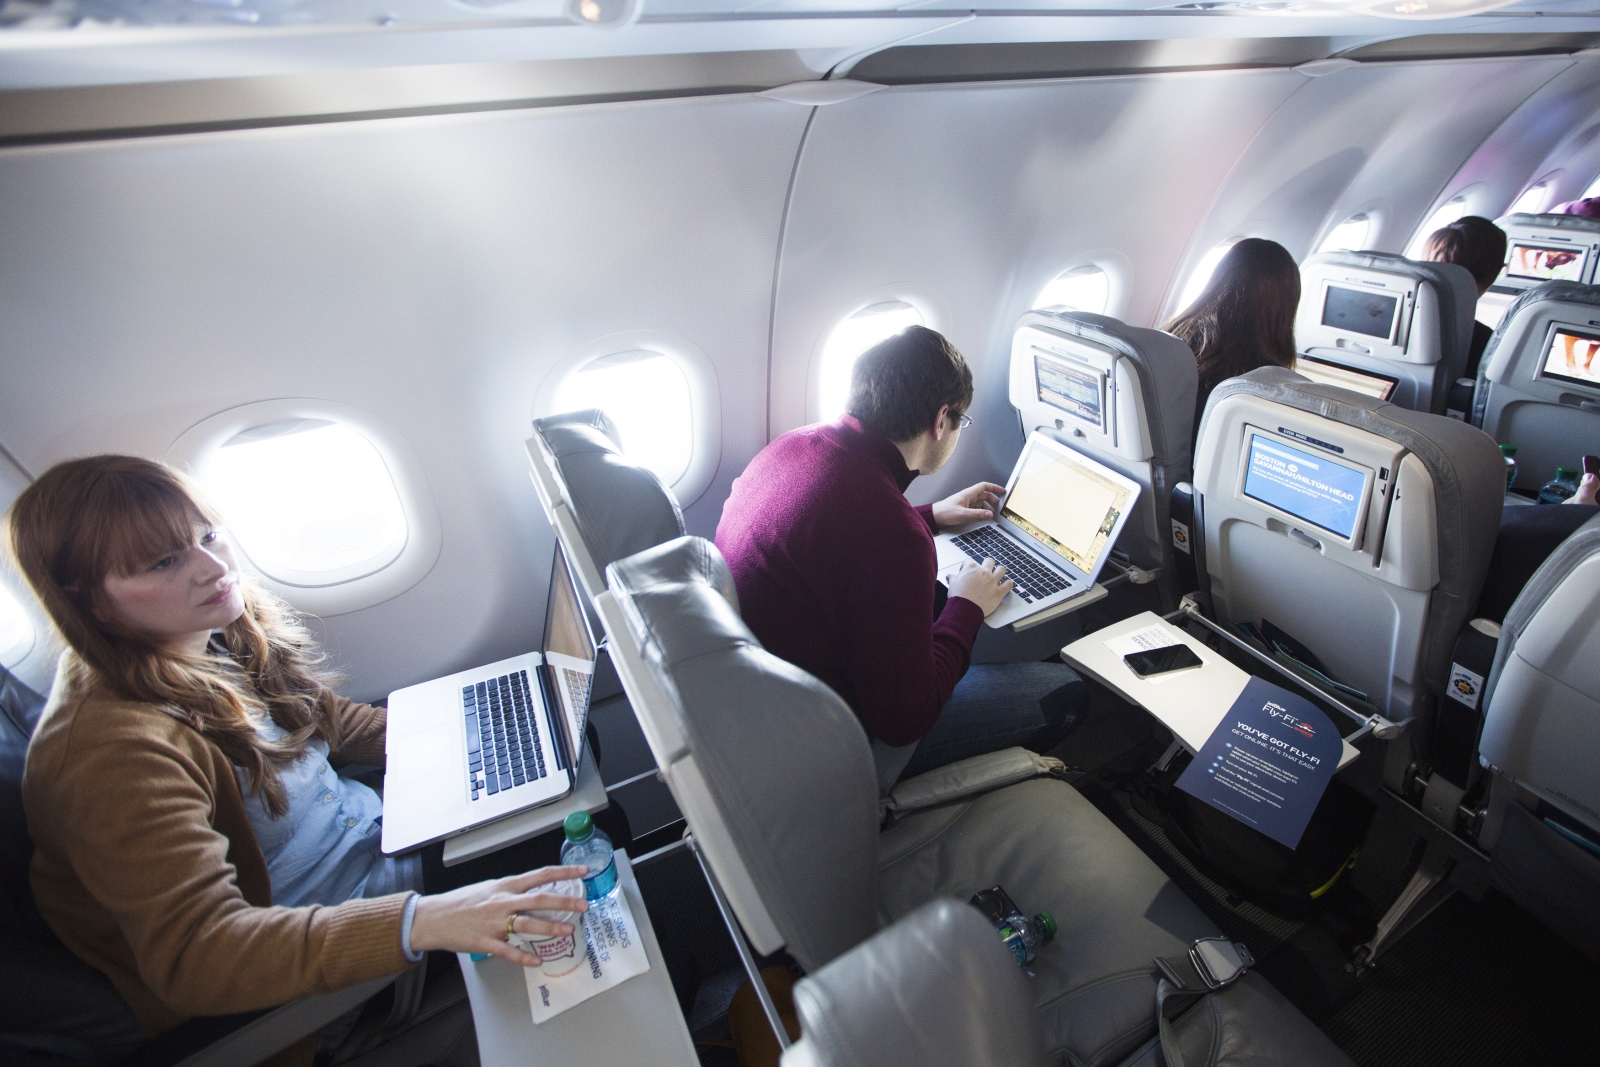 Journalists using laptops on wifi-equipped airplane